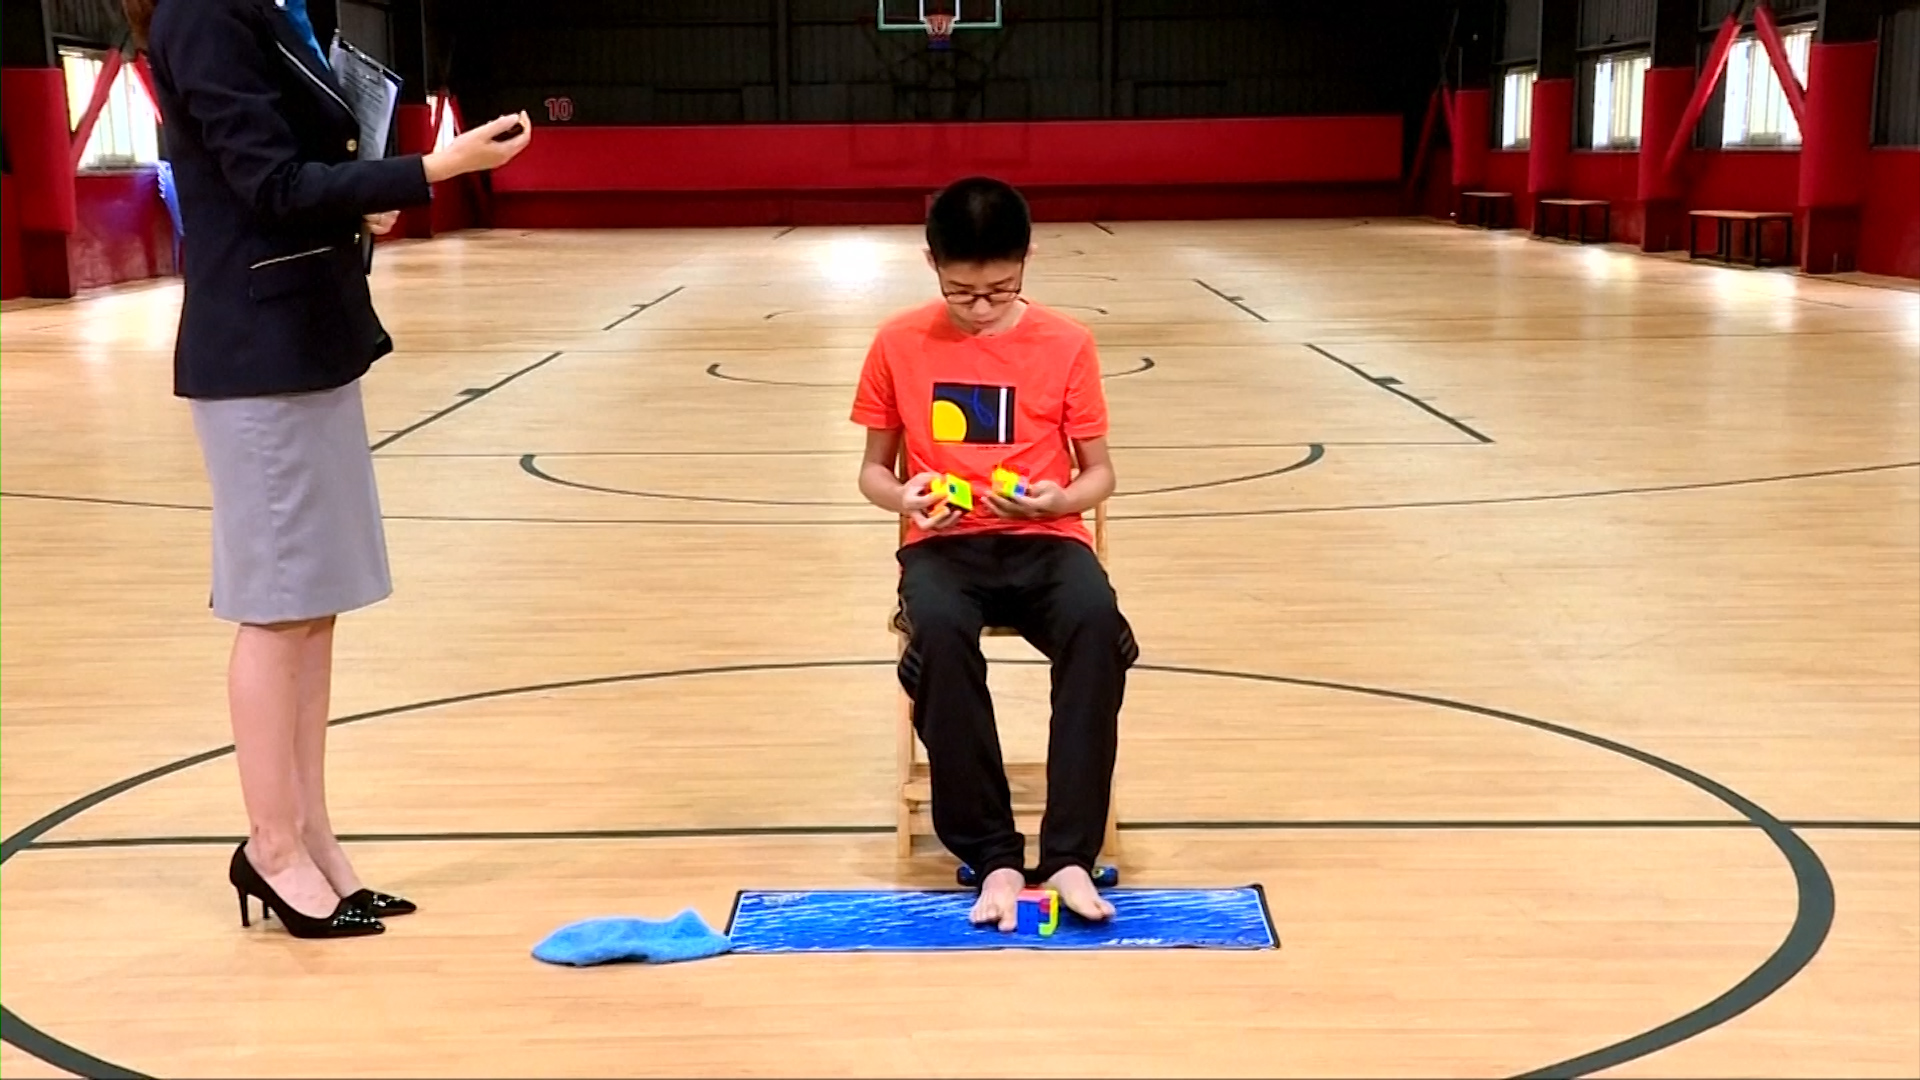 Rubik's Cube Montreal Chinese Teenager Breaks Rubik S Cube World Record By Solving With Hands And Feet